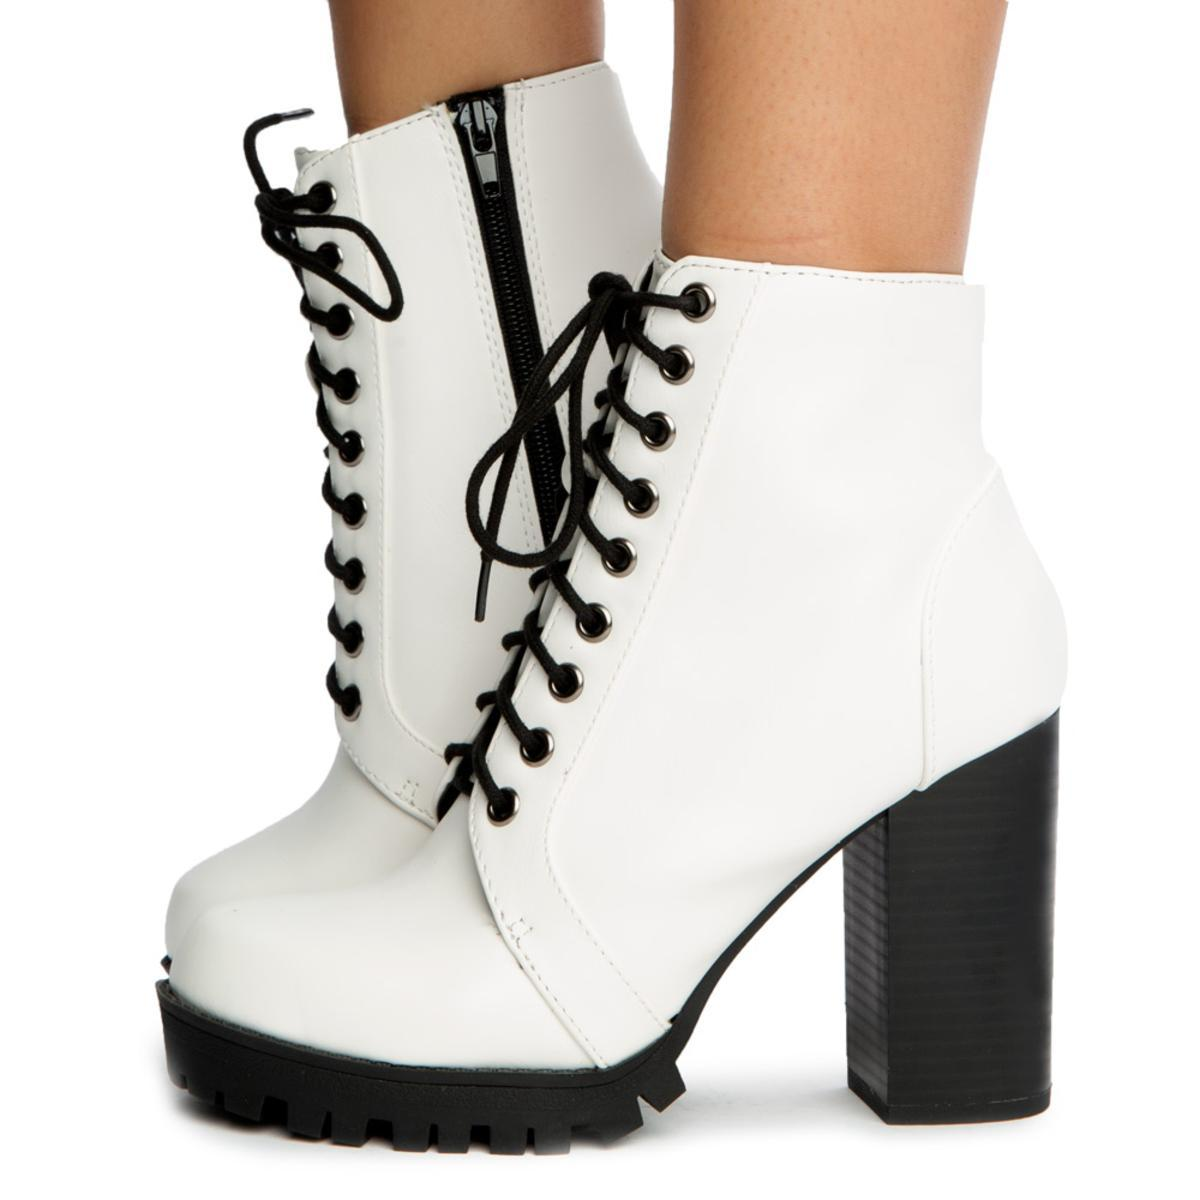 Chalet-S Lace Up Booties